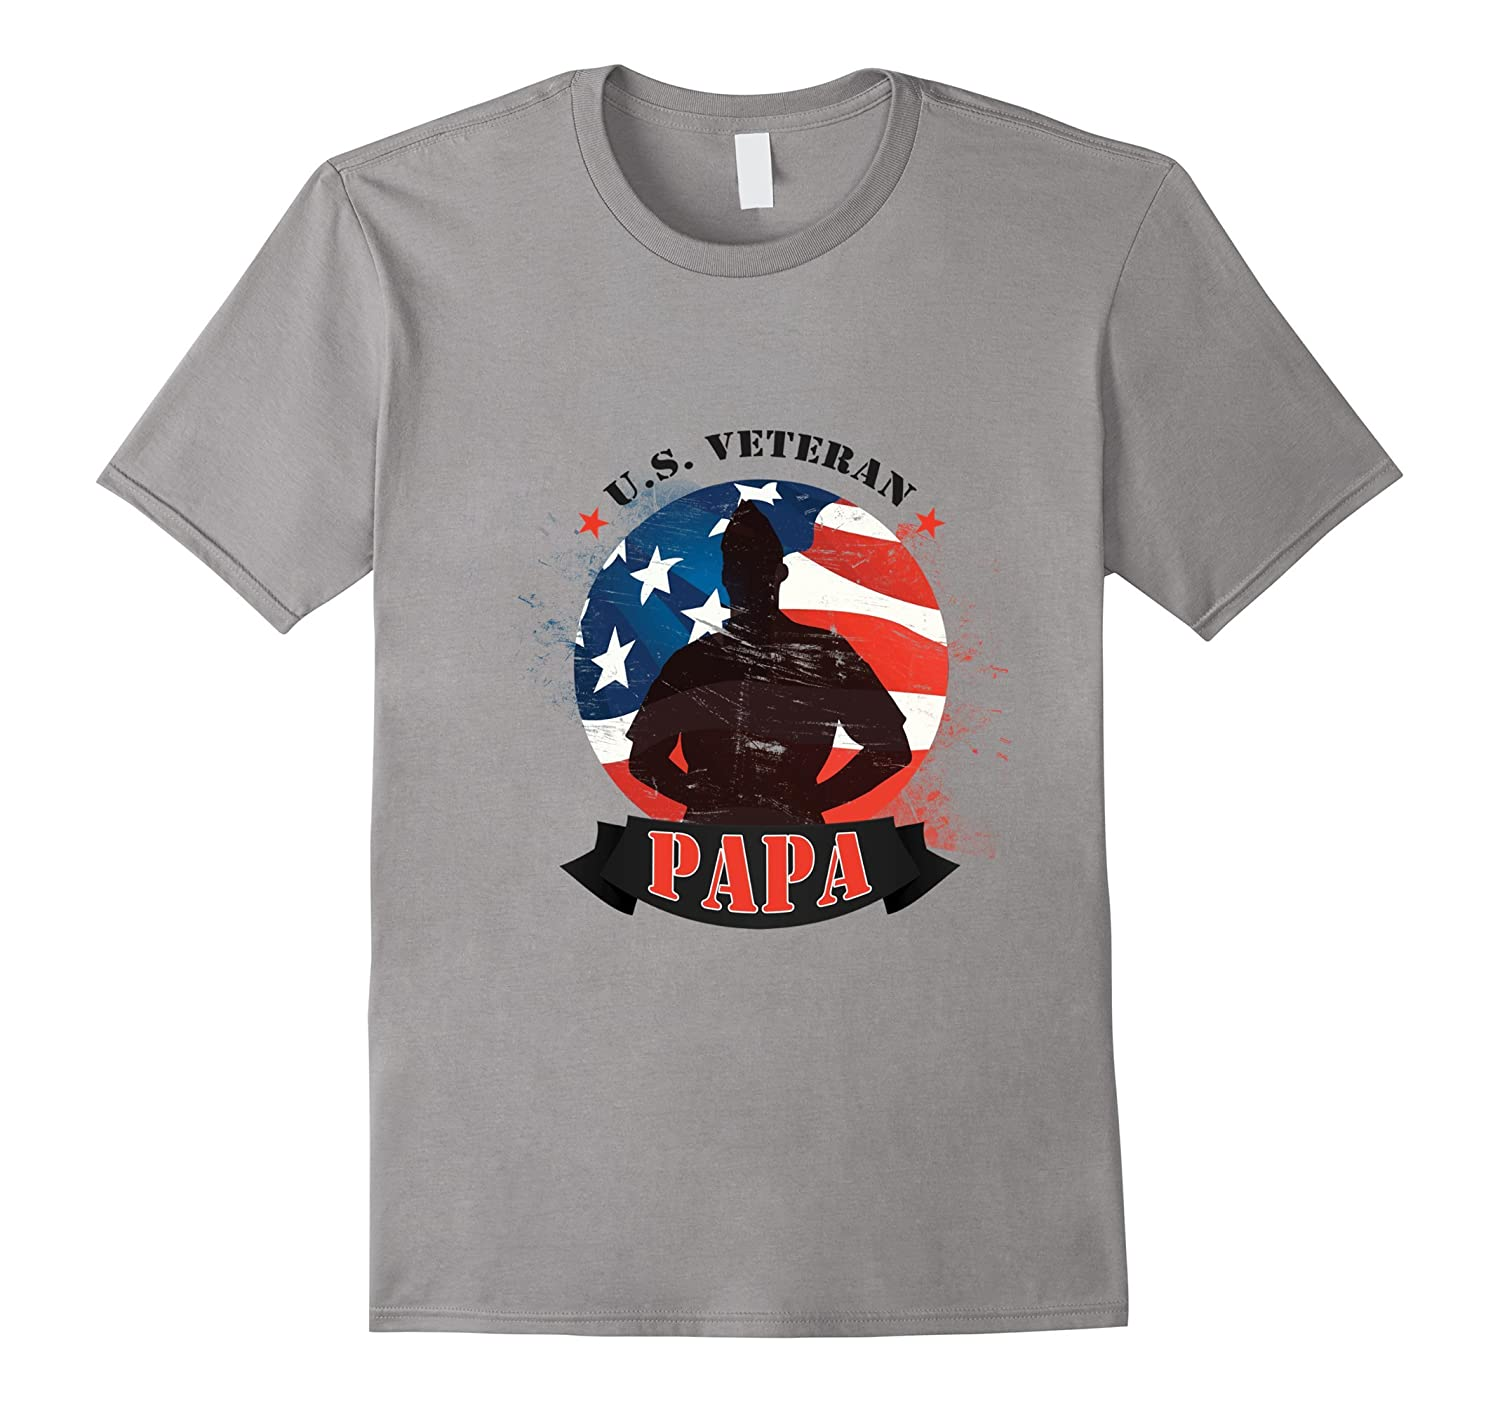 veteran papa t shirt goatstee. Black Bedroom Furniture Sets. Home Design Ideas